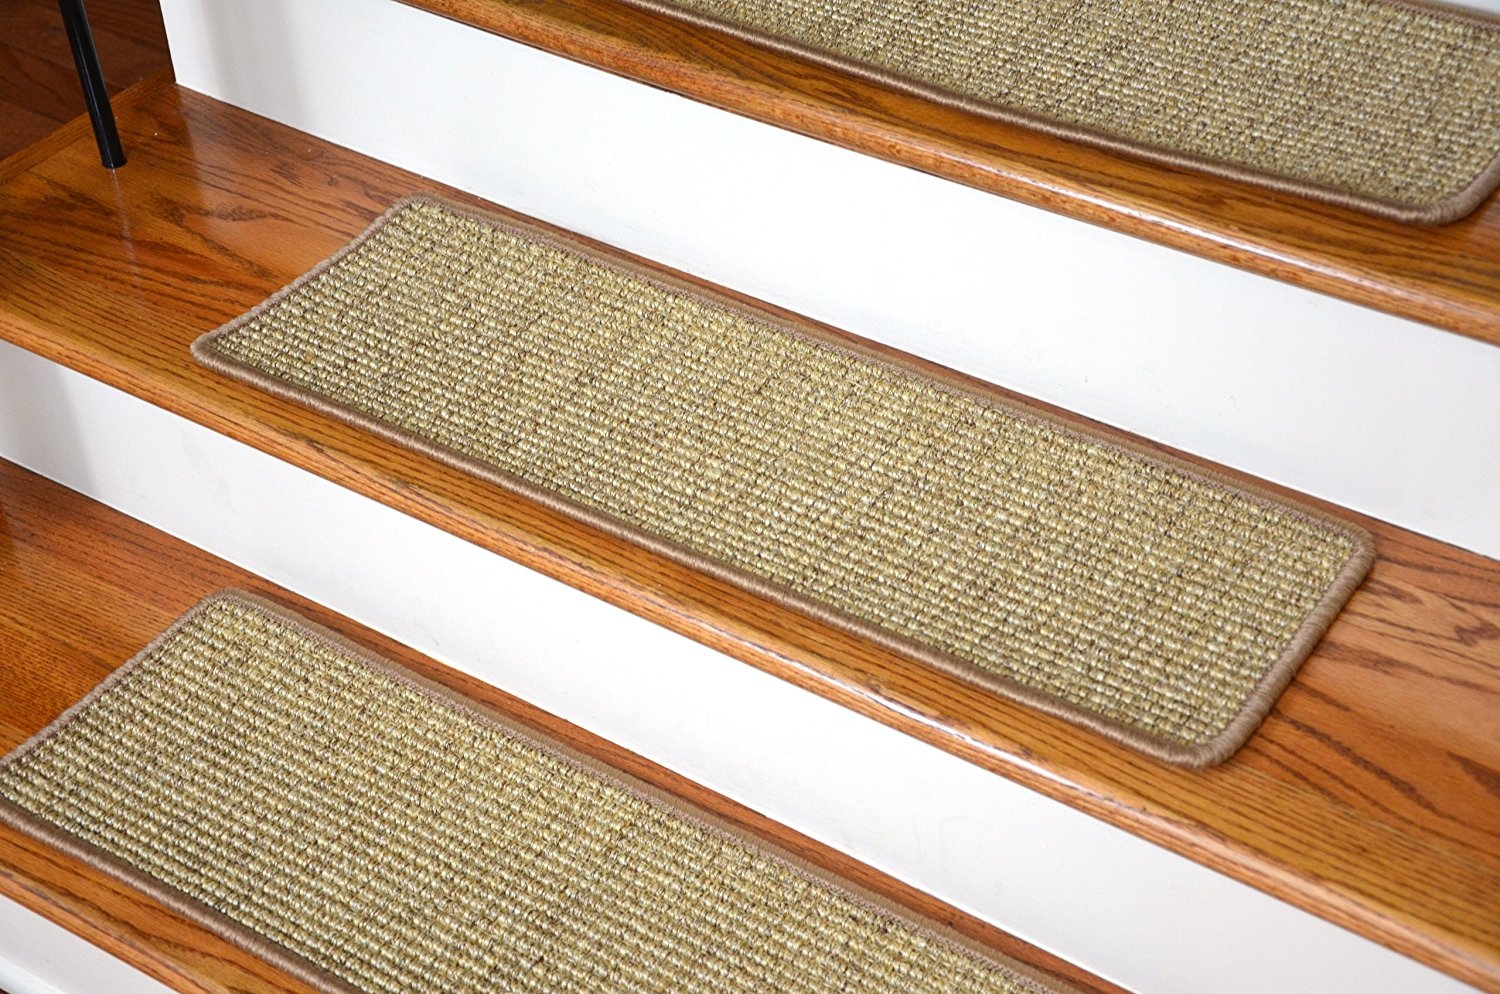 Amazon Dean Attachable Non Skid Sisal Carpet Stair Treads Inside Sisal Stair Tread Rugs (Image 1 of 15)